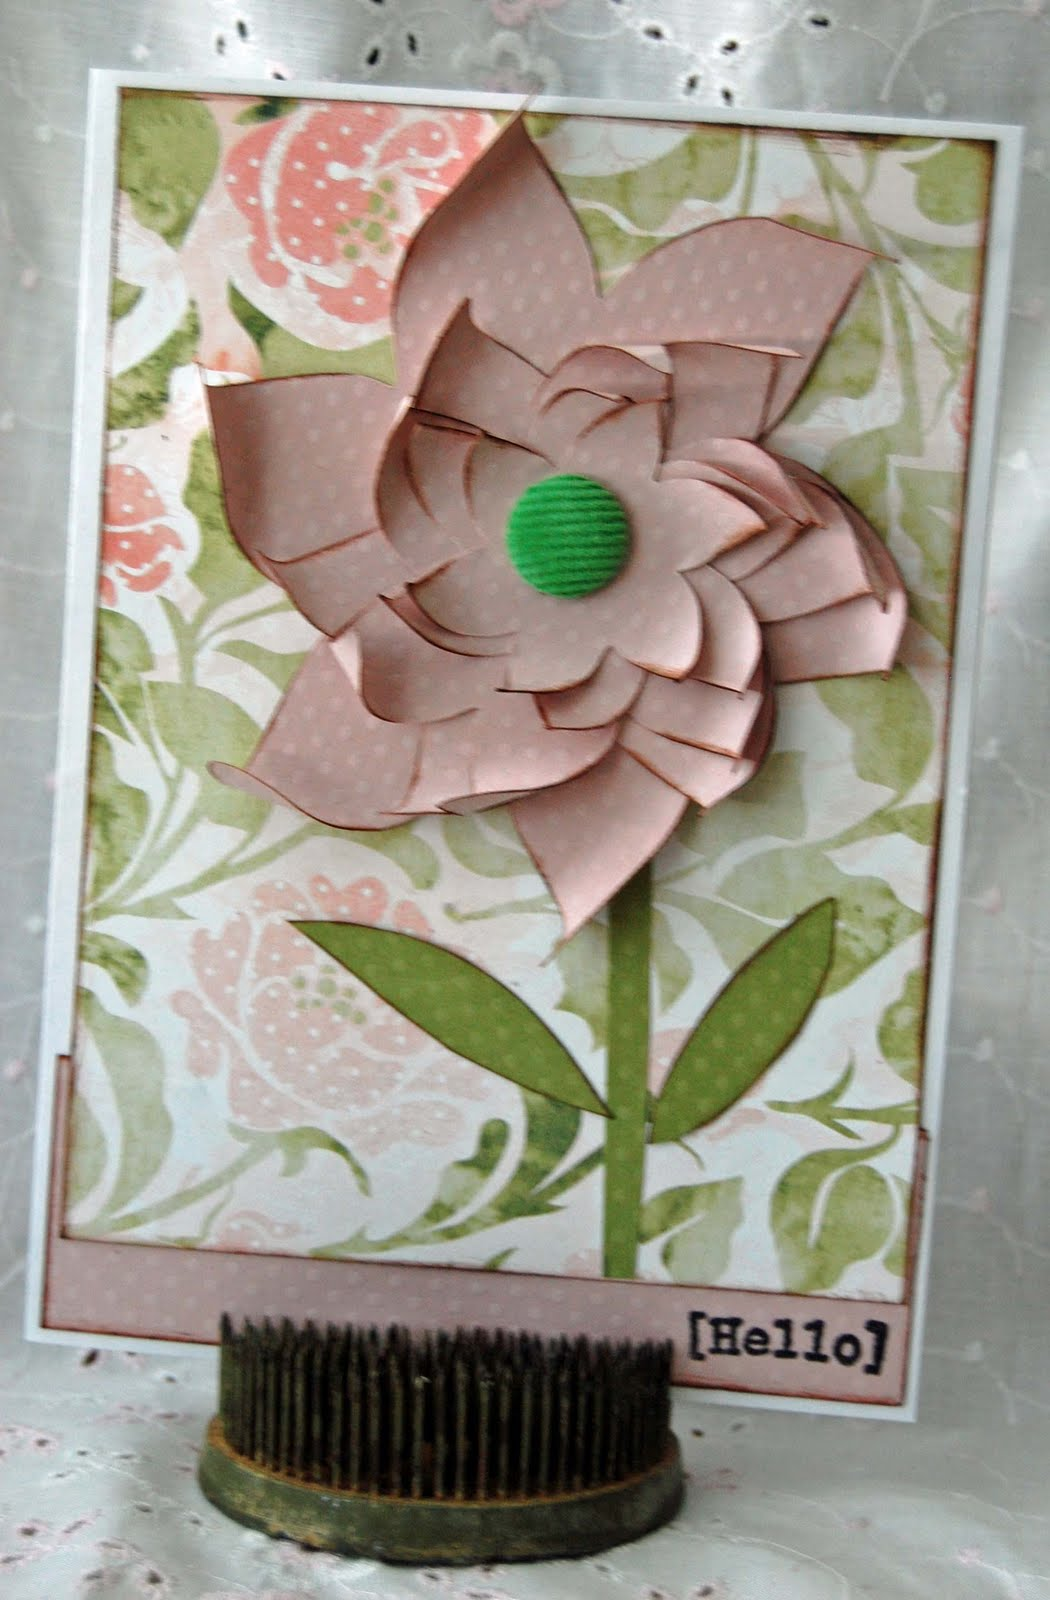 Layered Flower SVG http://pigtailspapertrails.blogspot.com/2010/04/fabulous-flower-card-svg-and-gsd.html